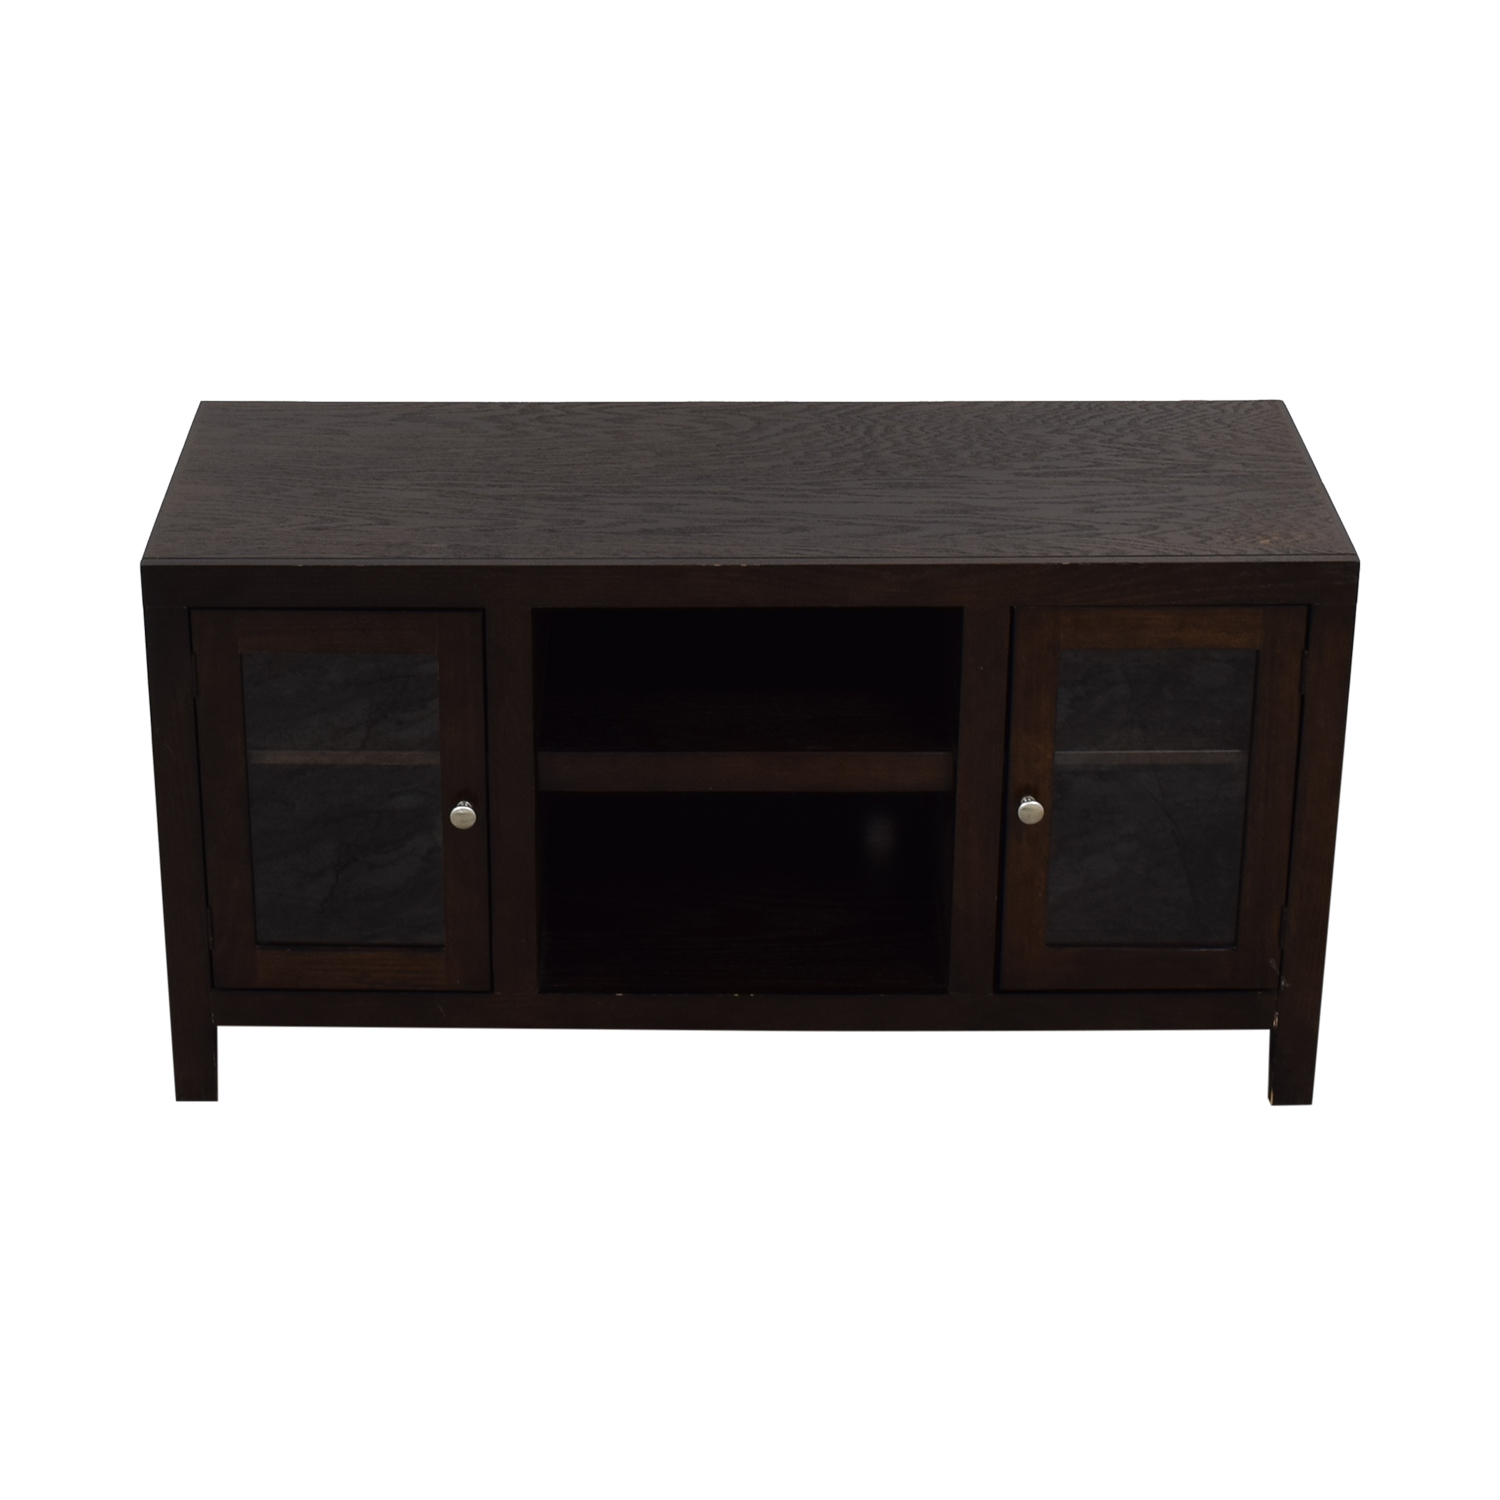 Whalen Furniture Whalen Furniture Media Console used